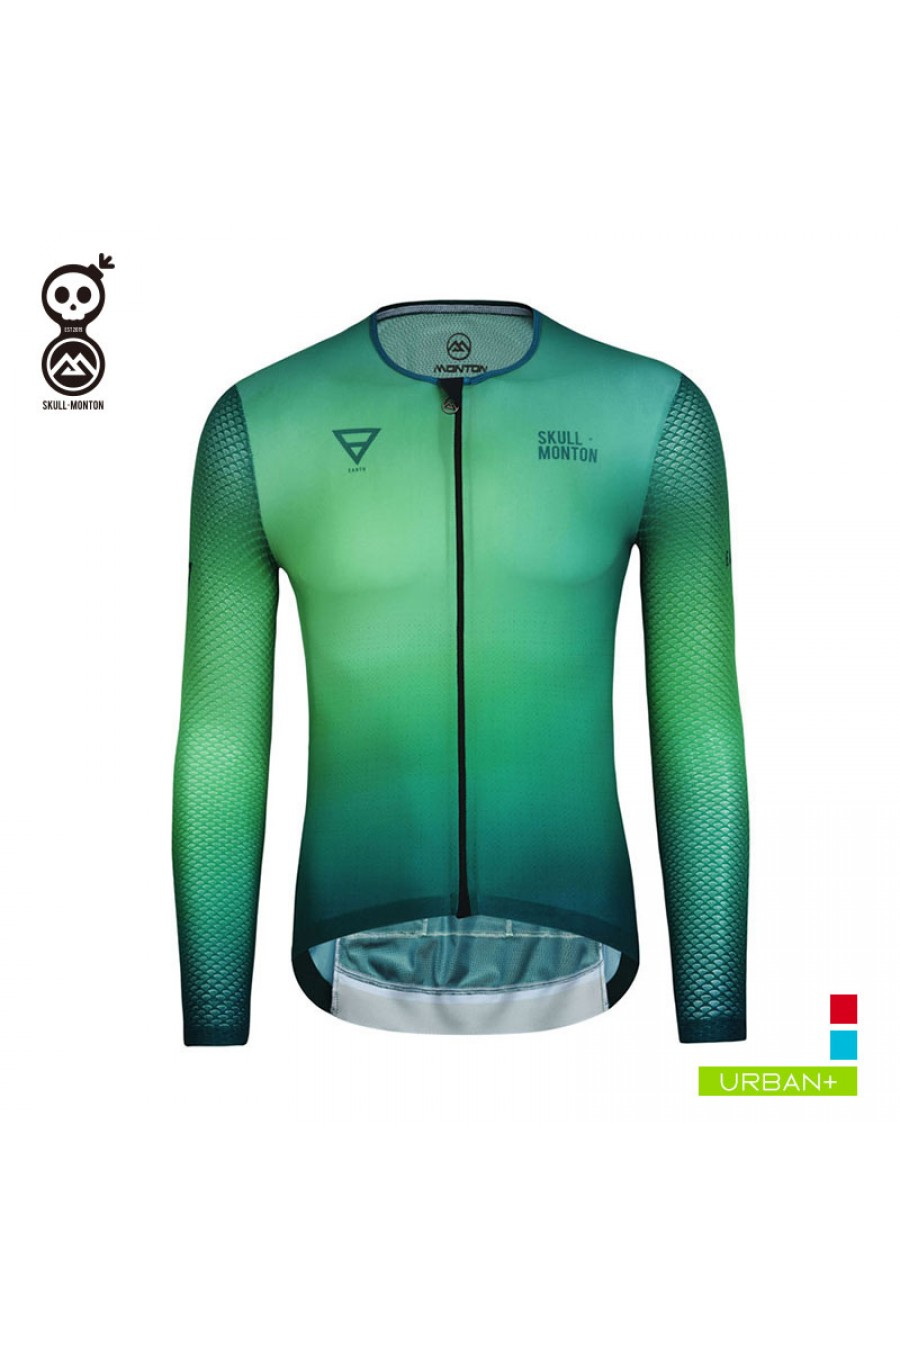 Mens Sports Team Cycling Jersey Set Bike Bicycle Top Long Sleeve Clothing Pocket